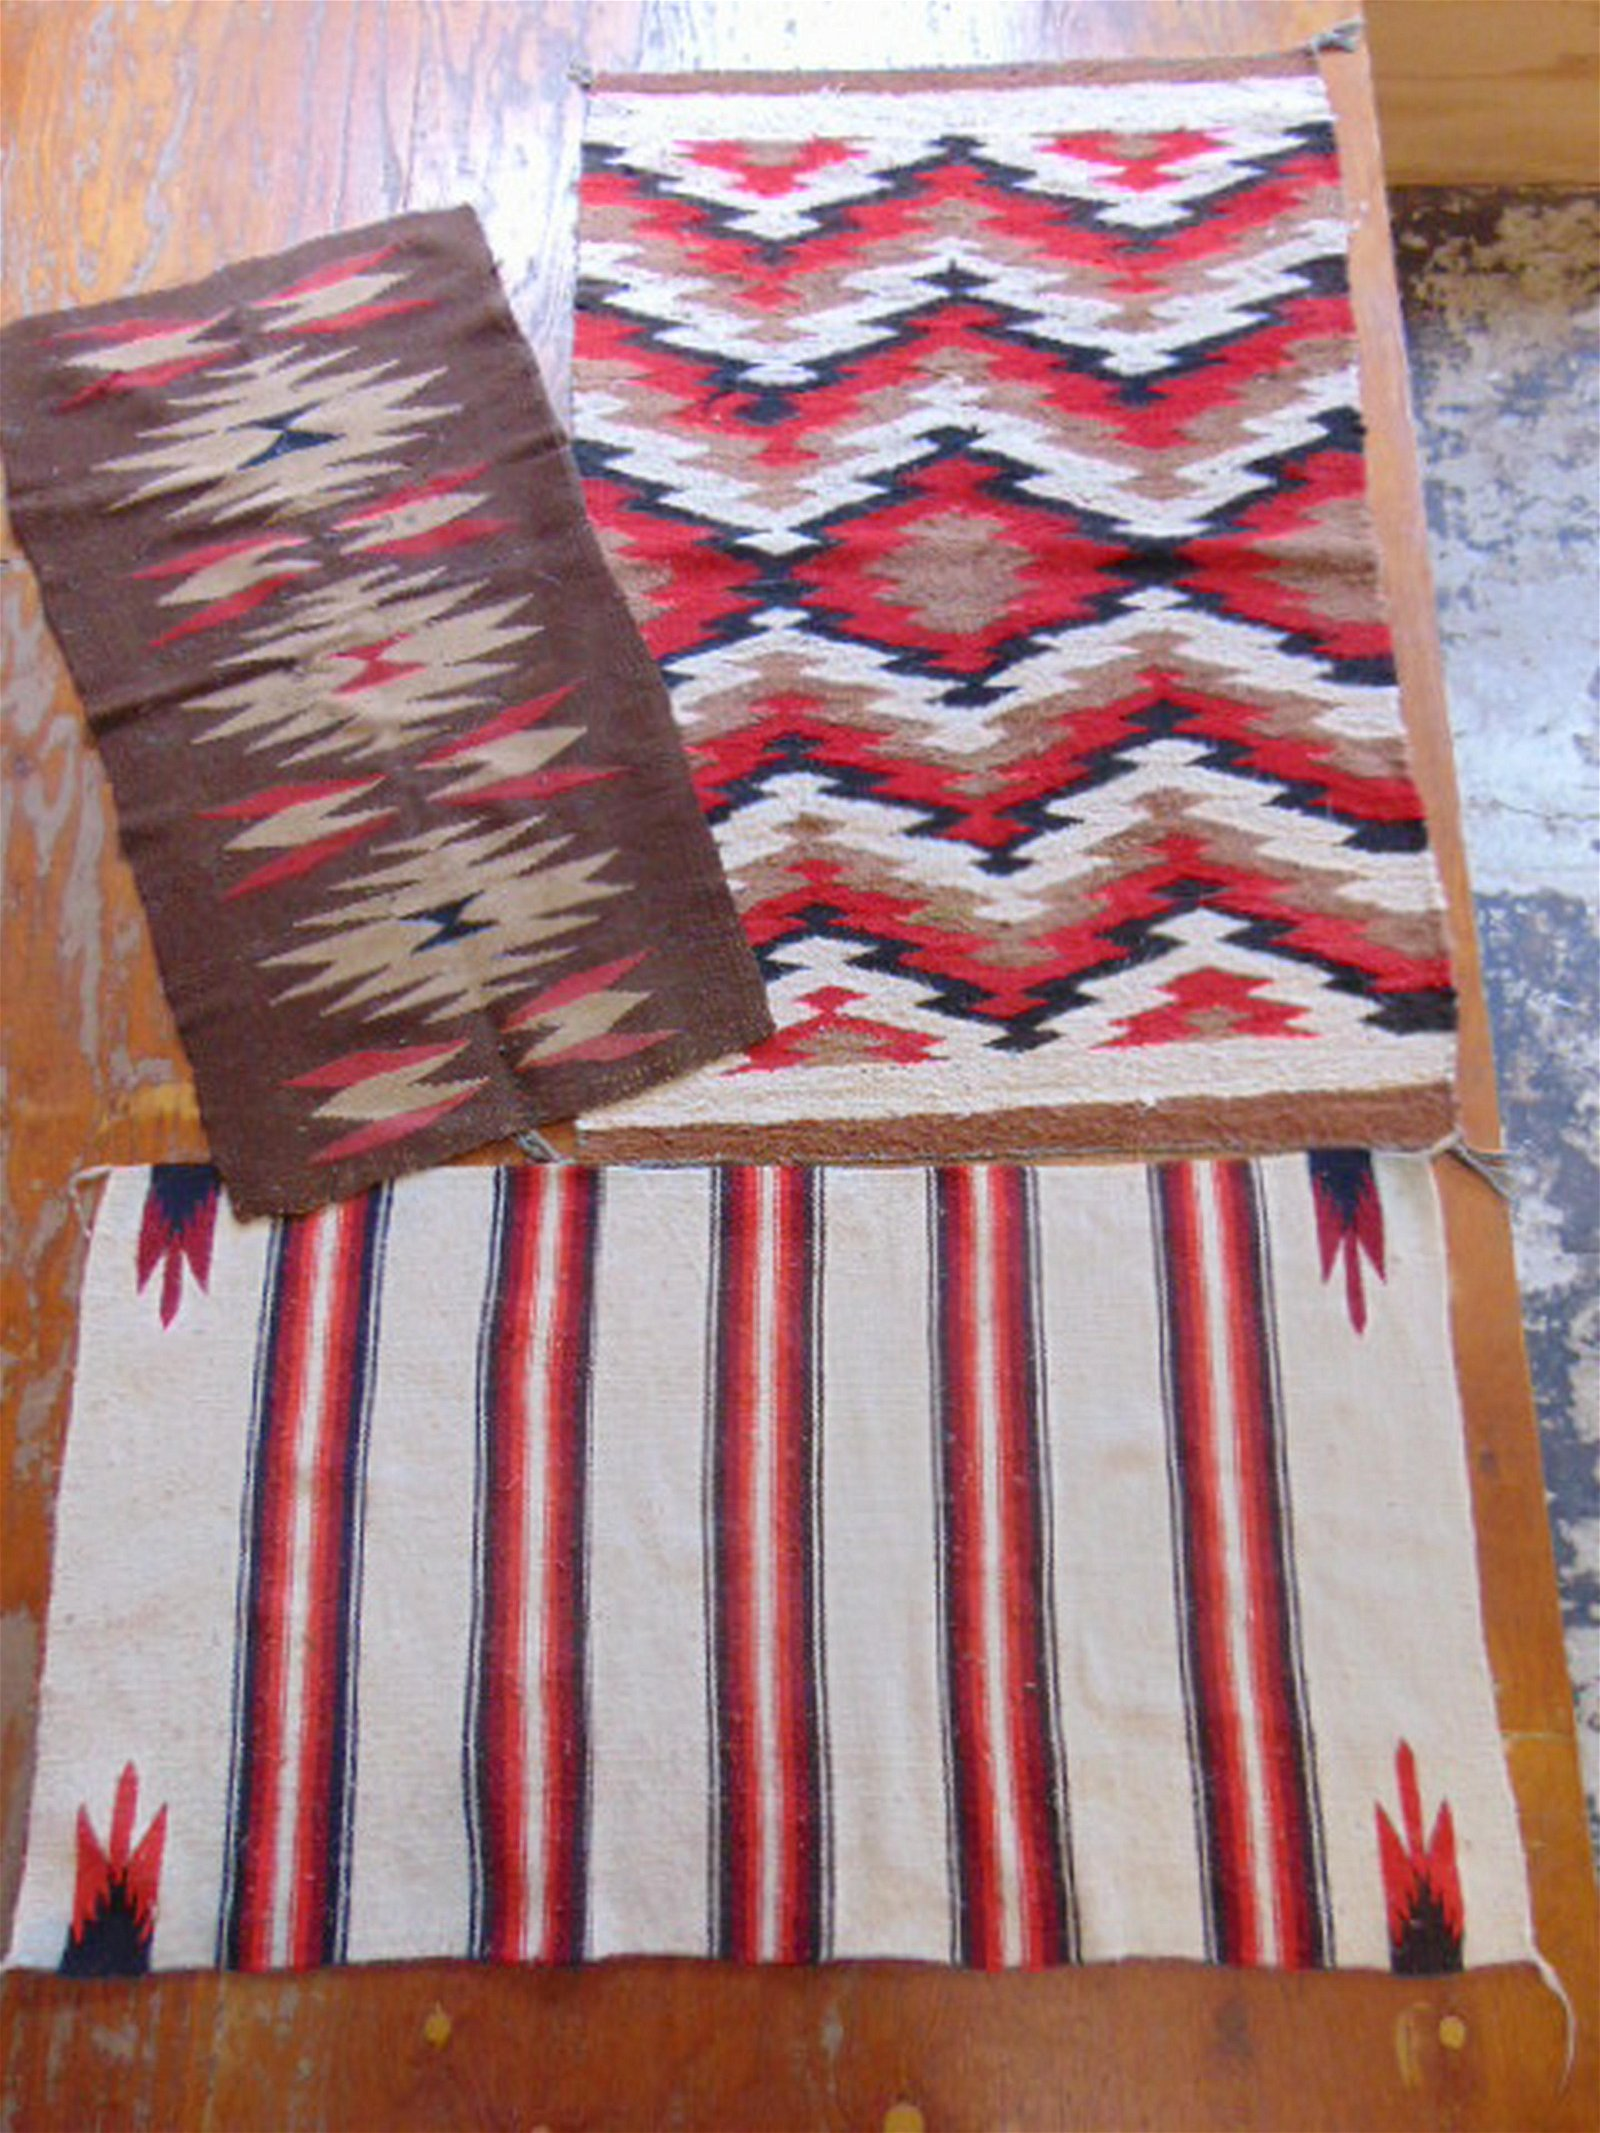 3 Navajo horse blankets, native Indian rugs, dazzlers &